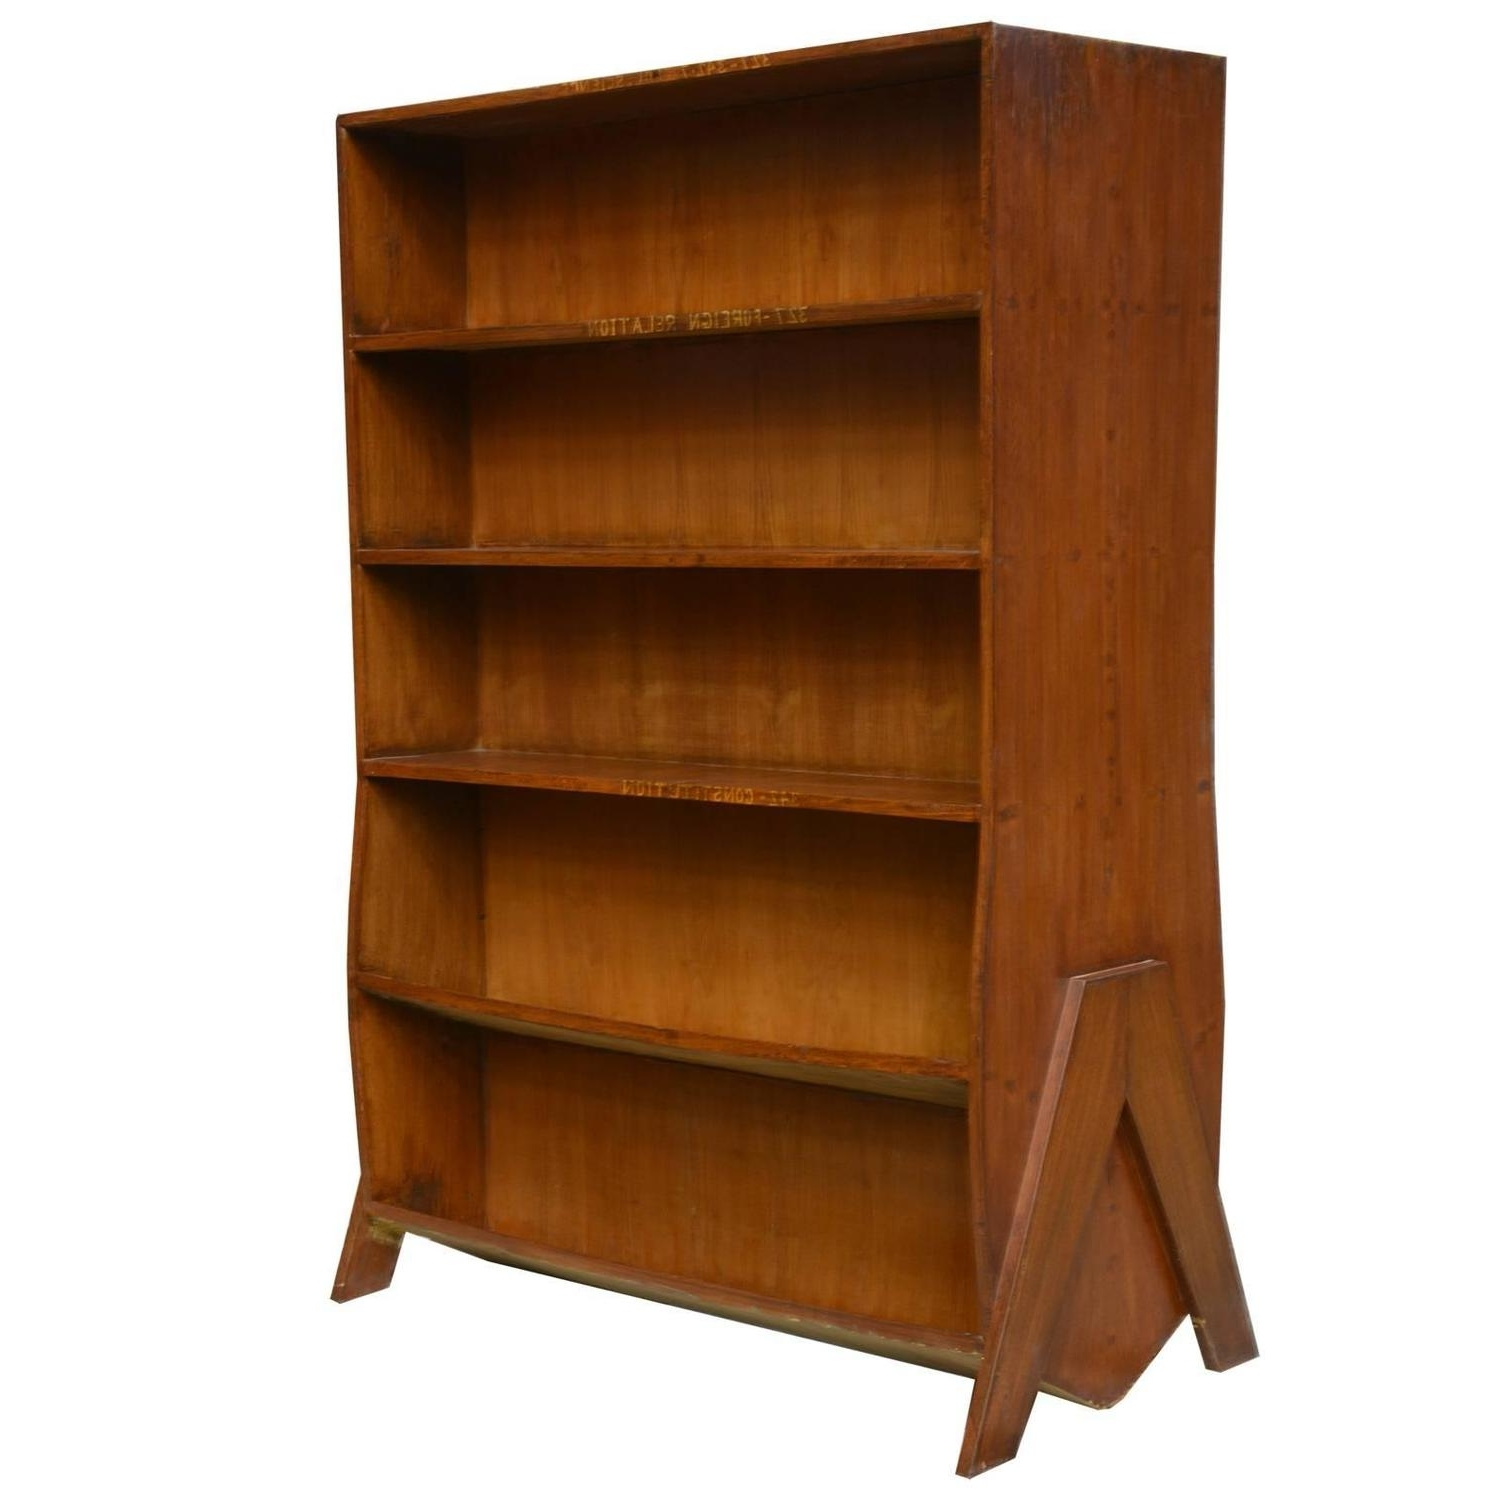 Double Sided Bookcases Throughout Popular Pierre Jeanneret Double Sided Bookcase For Sale At 1stdibs (View 10 of 15)